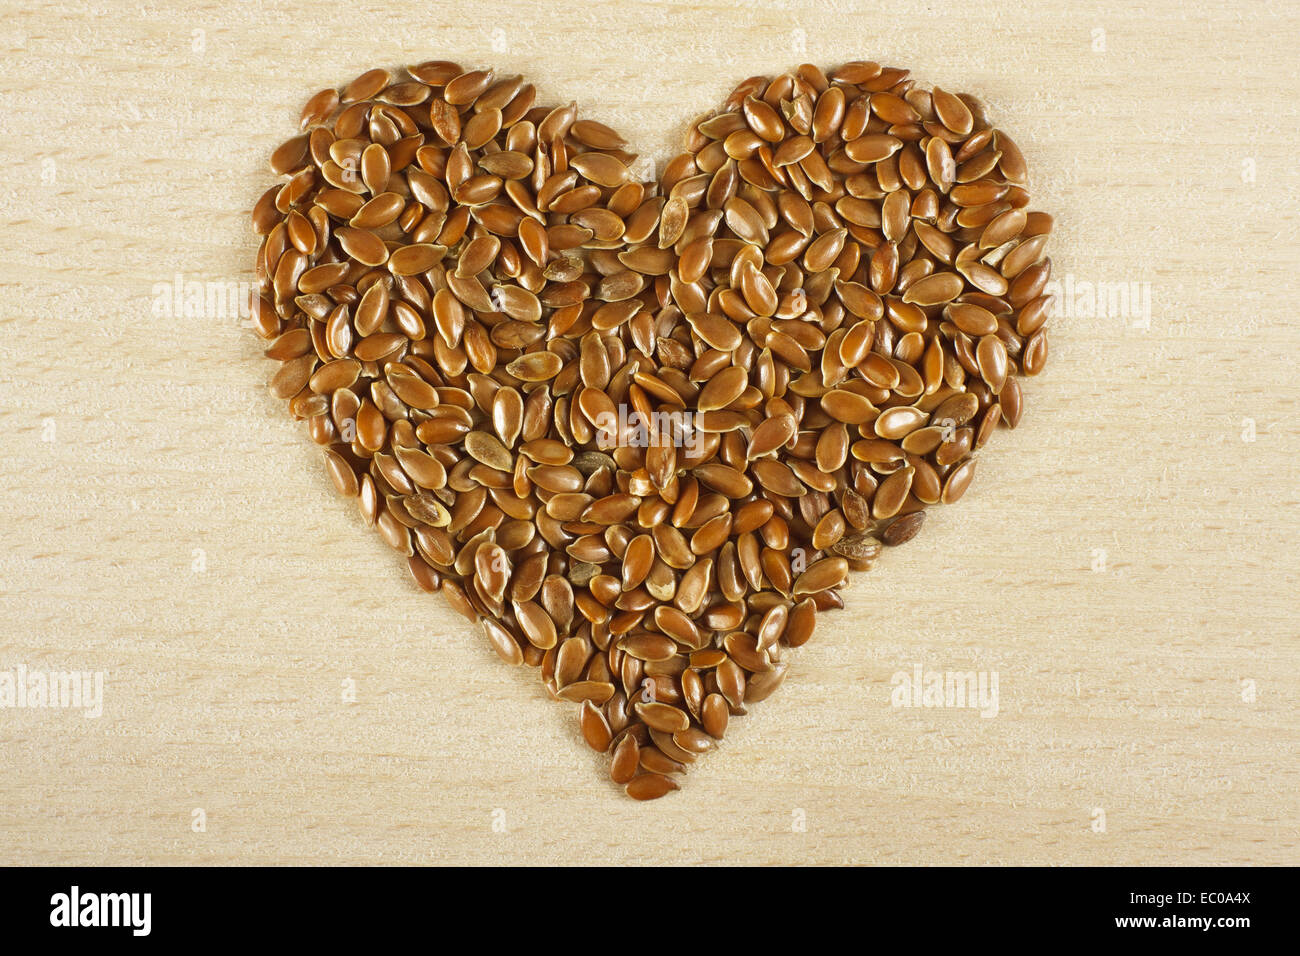 Heart  shape made from flax seed - Stock Image